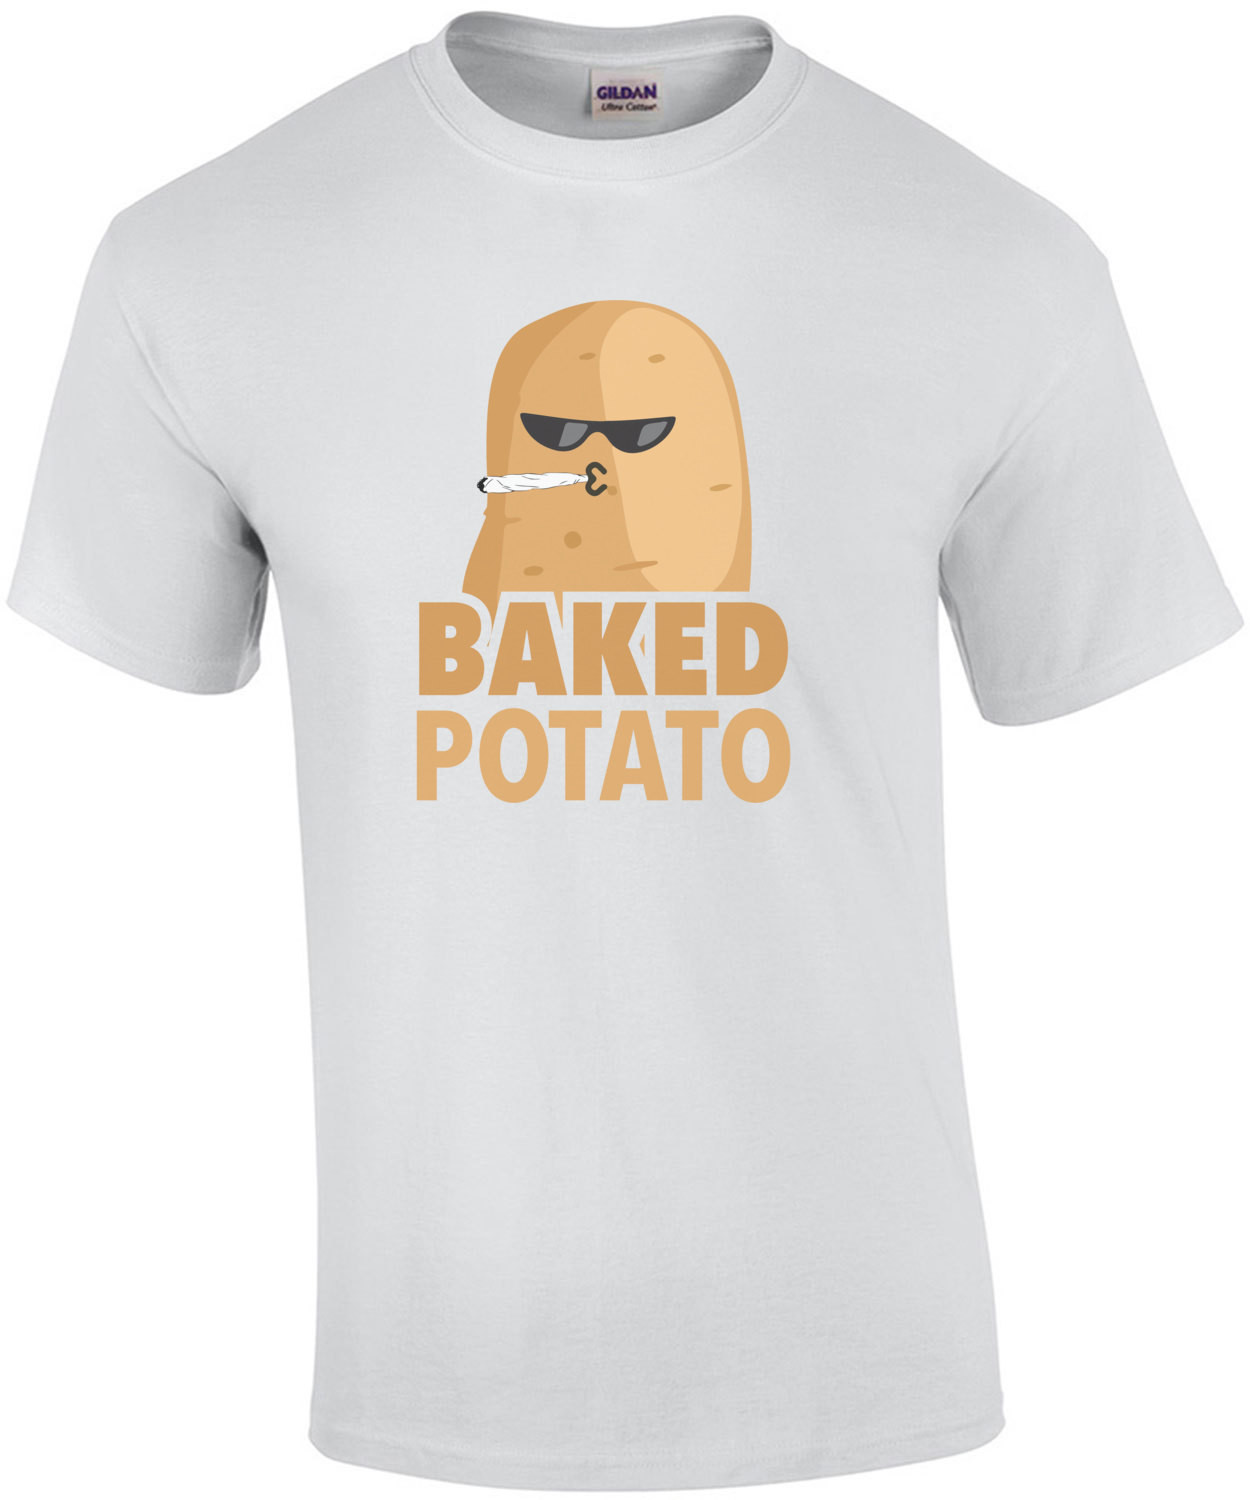 Baked Potato - funny weed t-shirt